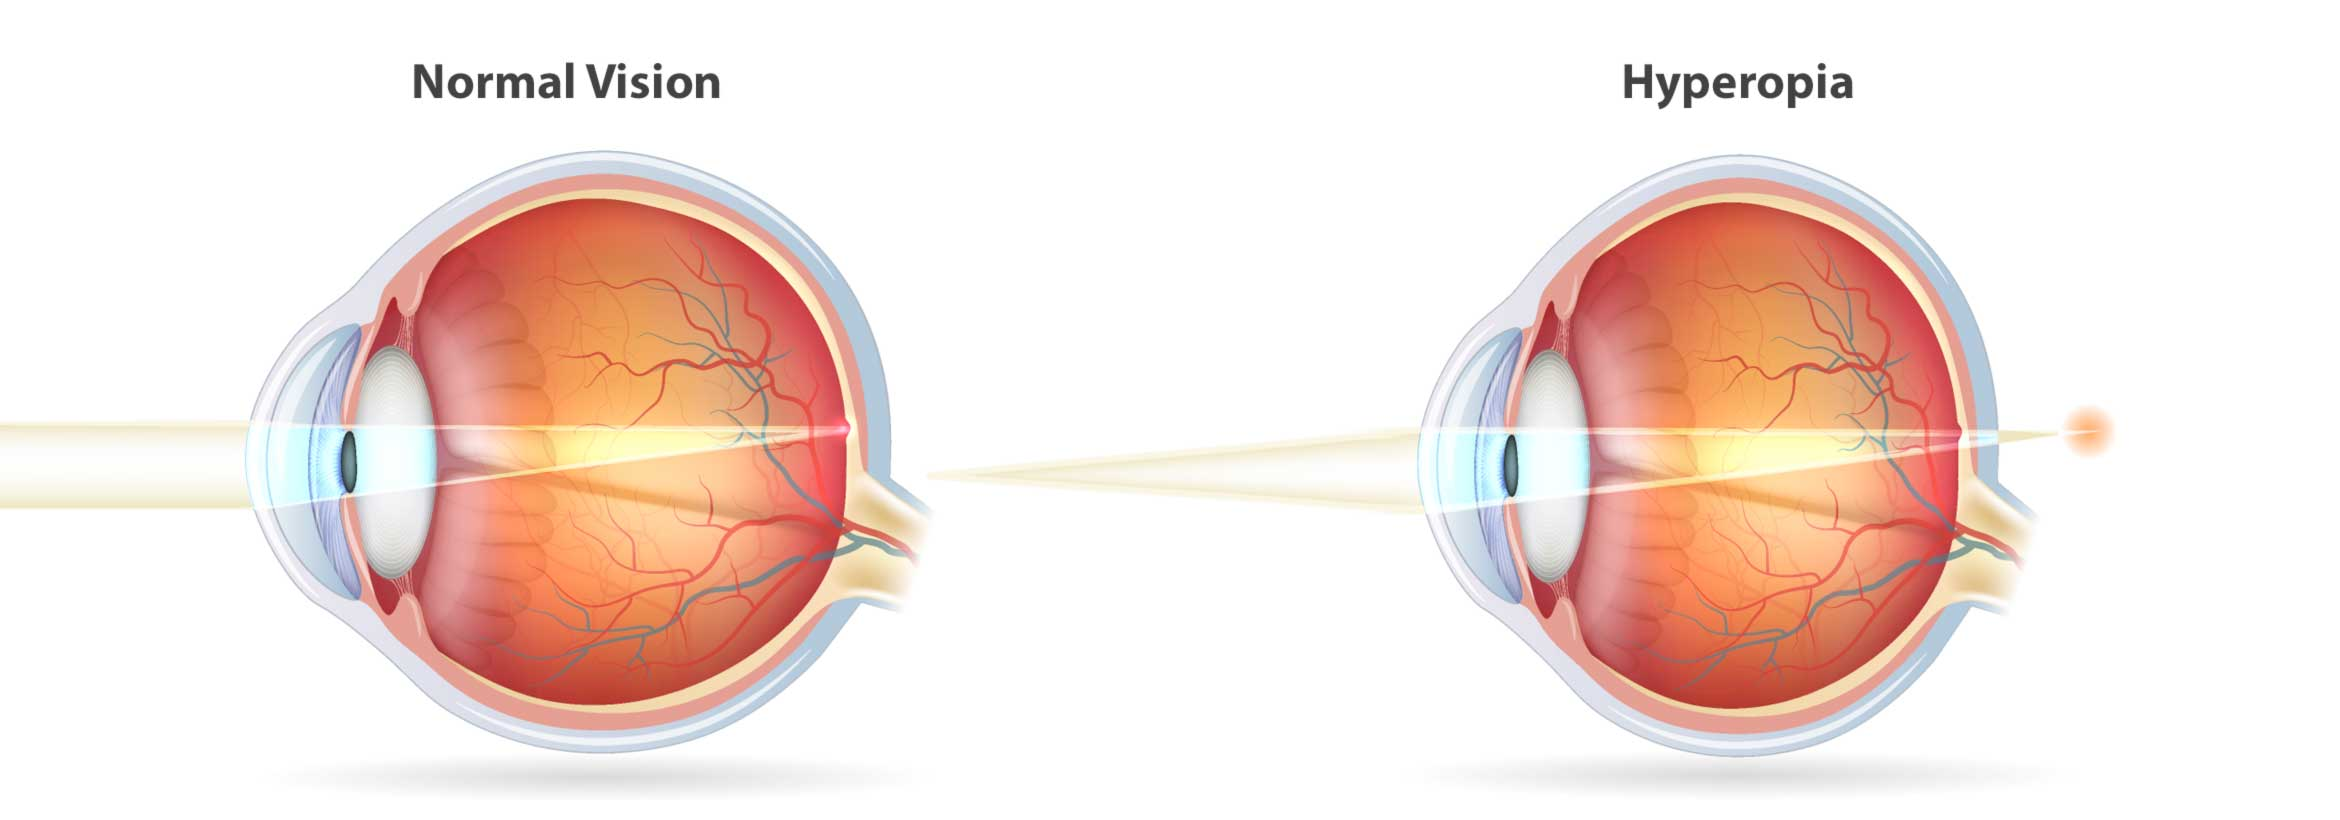 Learn more about farsightedness here.